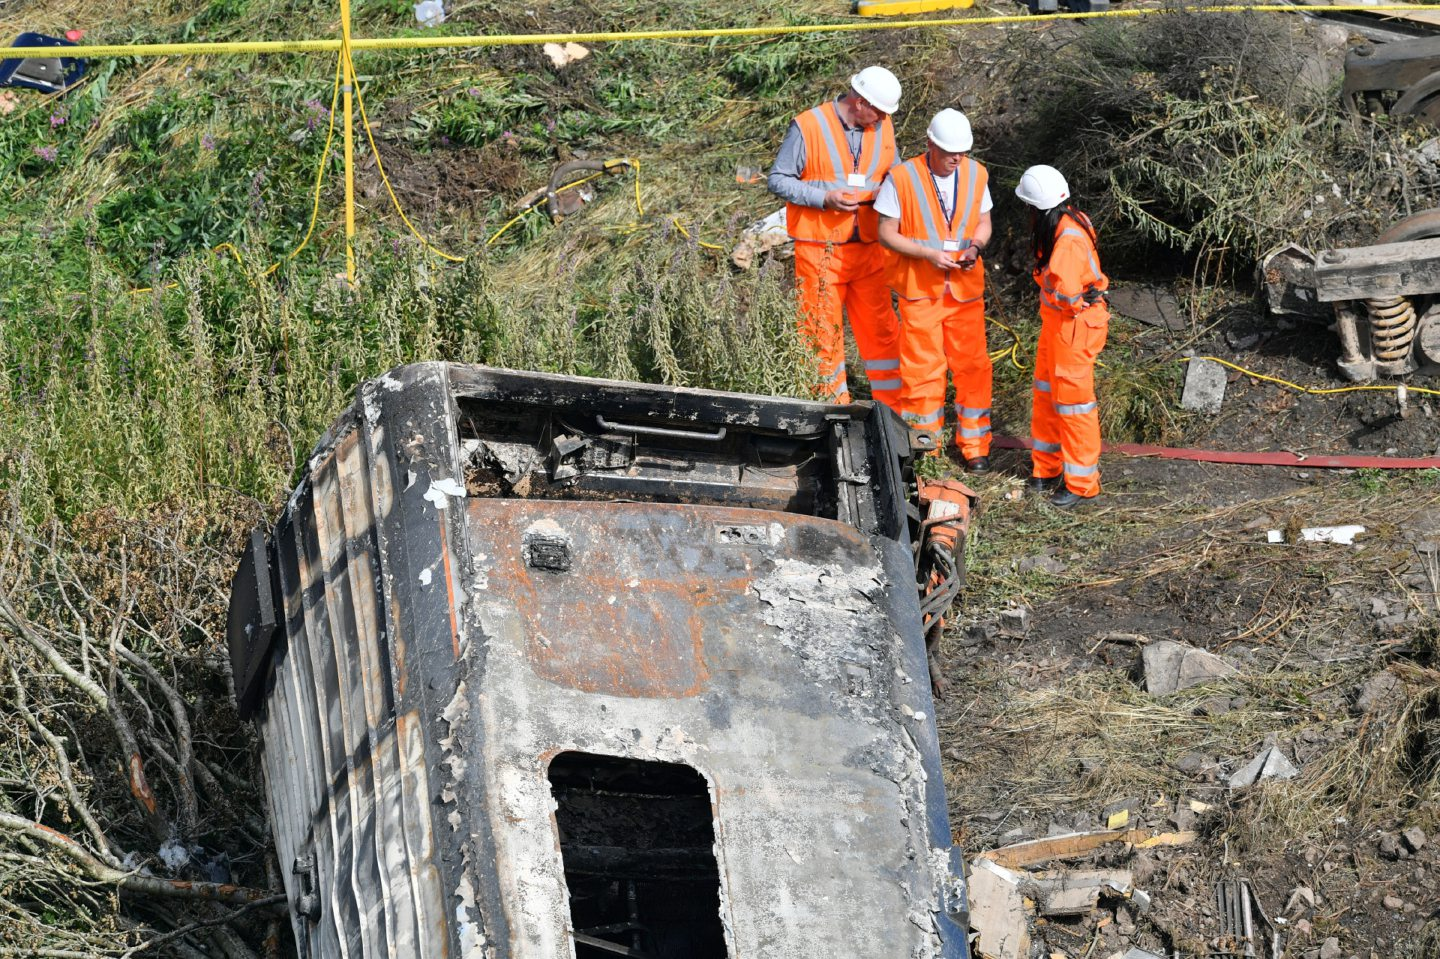 A rail safety expert has admitted the circumstances which are thought to have led to the derailment could happen again